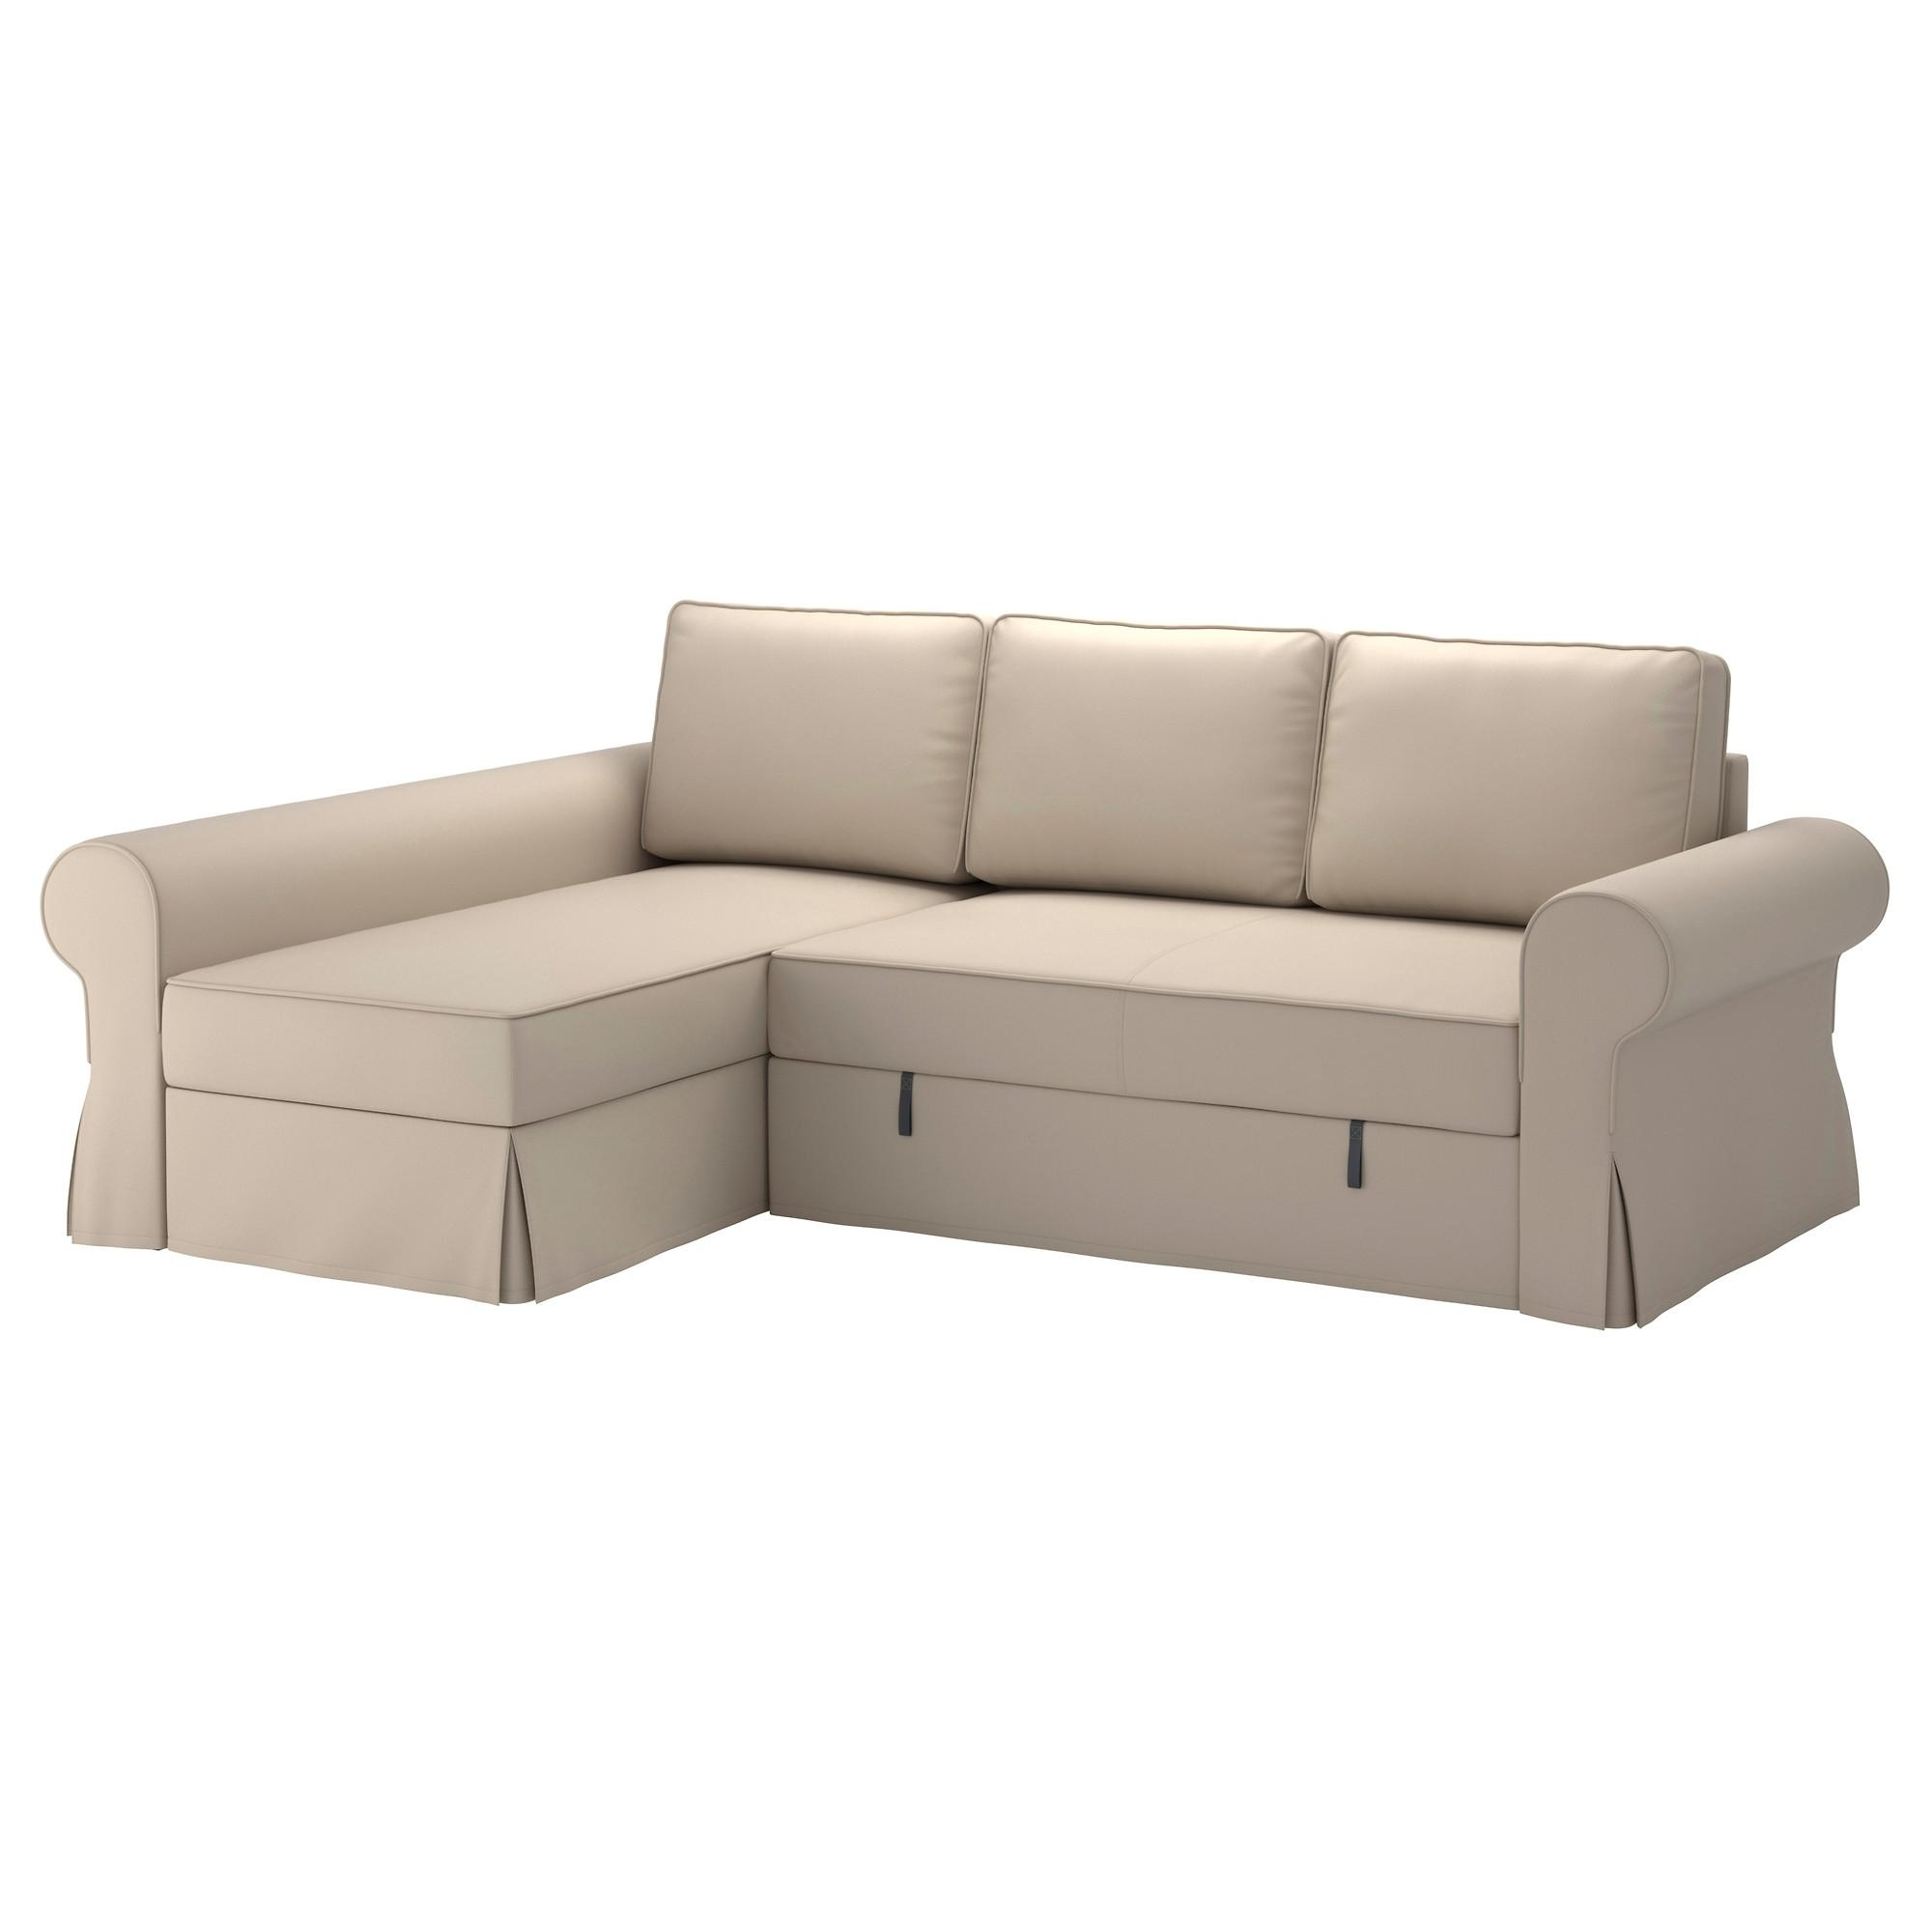 20 photos ikea chaise lounge sofa sofa ideas for Chaise longue or chaise lounge